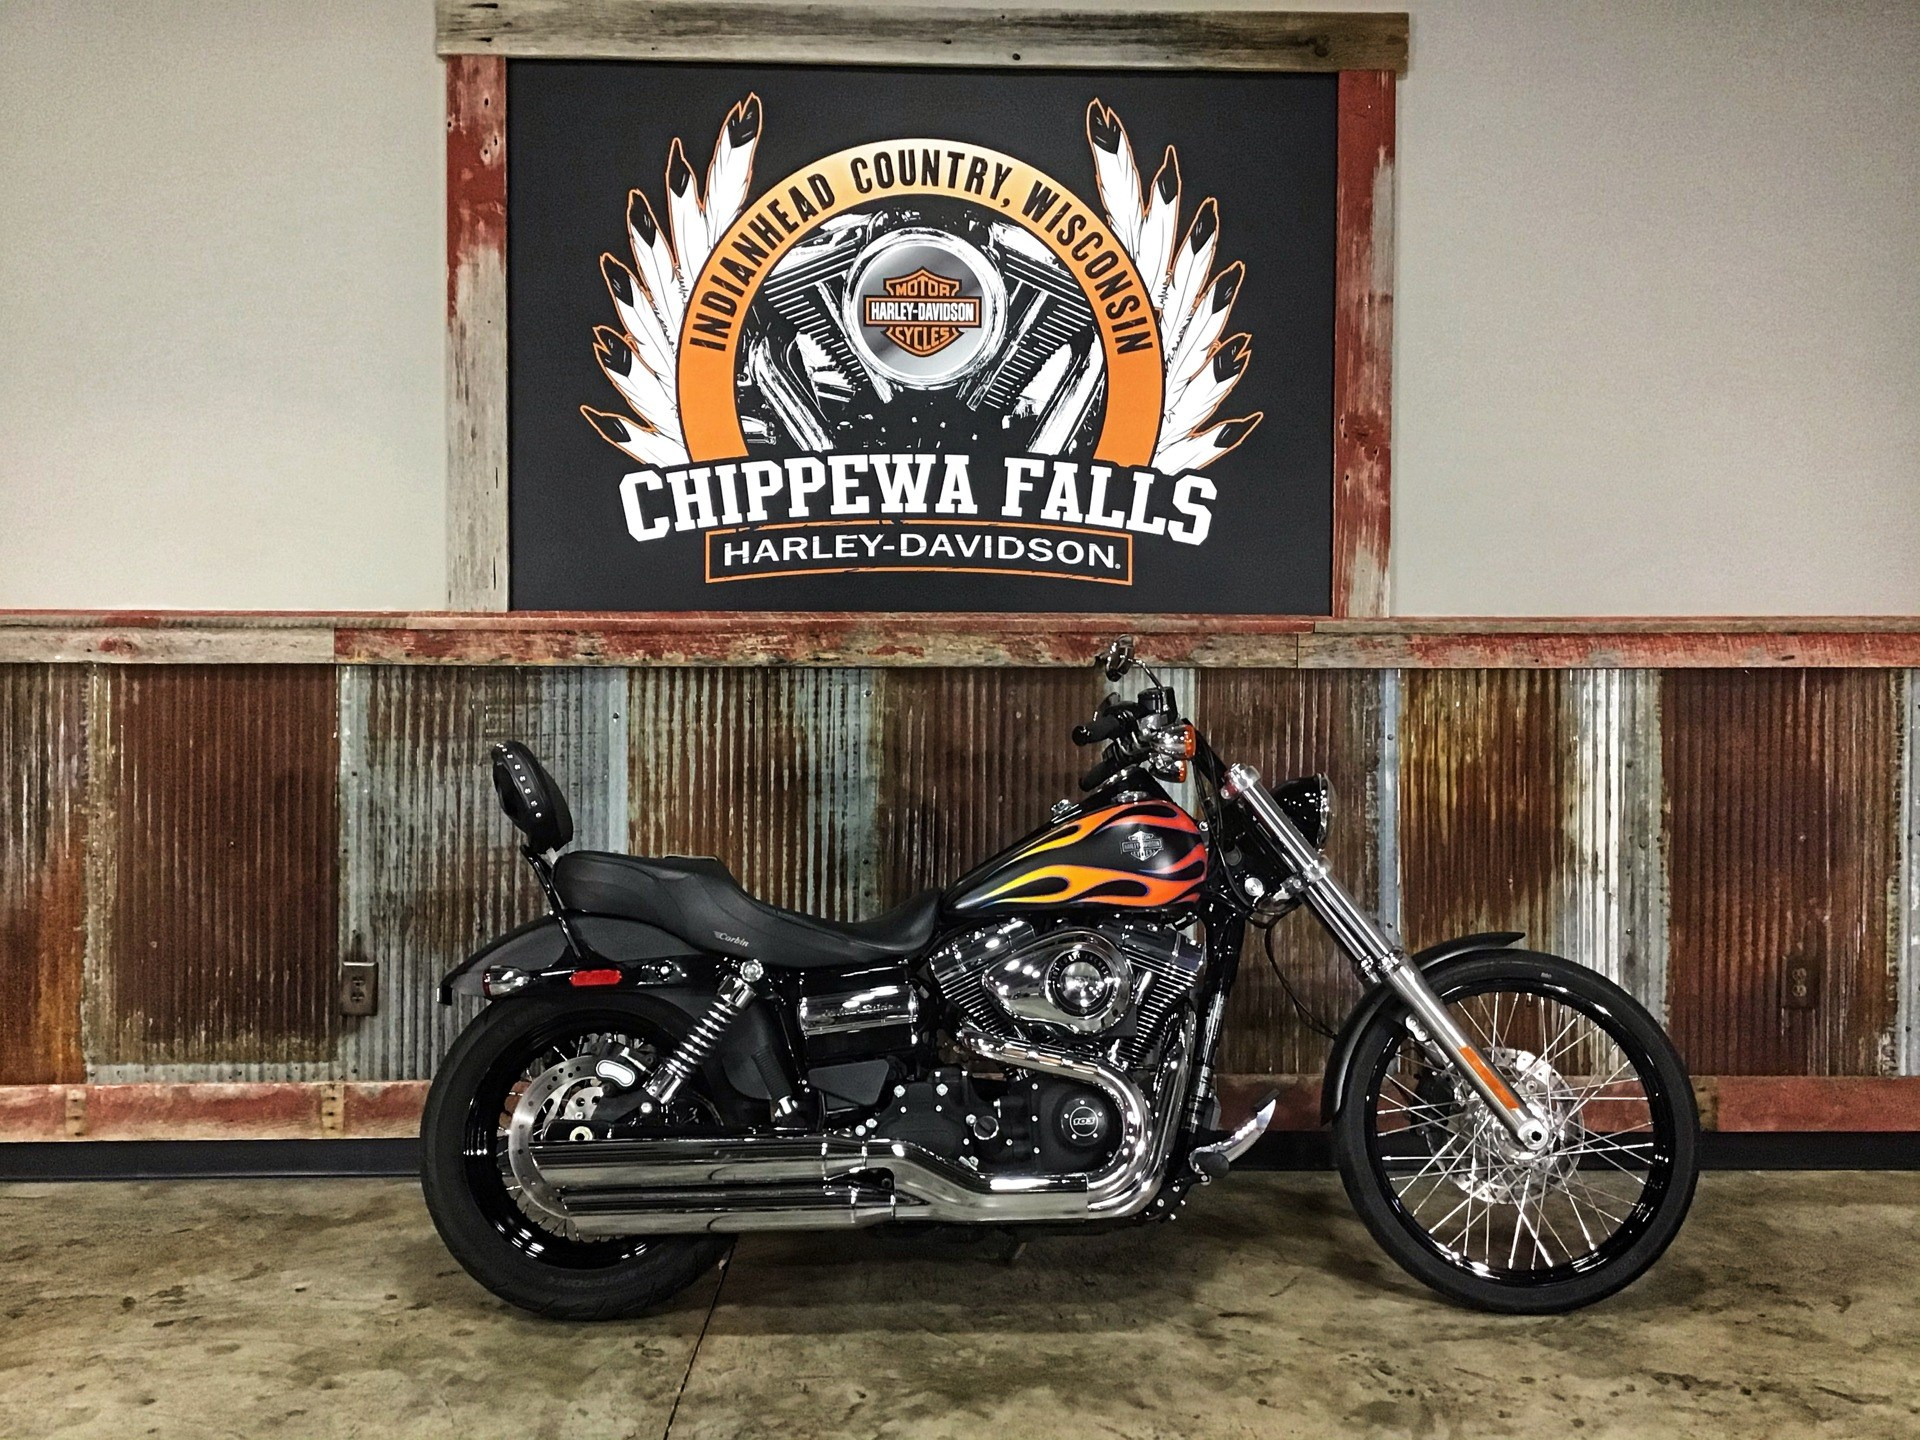 2015 Harley-Davidson Wide Glide® in Chippewa Falls, Wisconsin - Photo 2